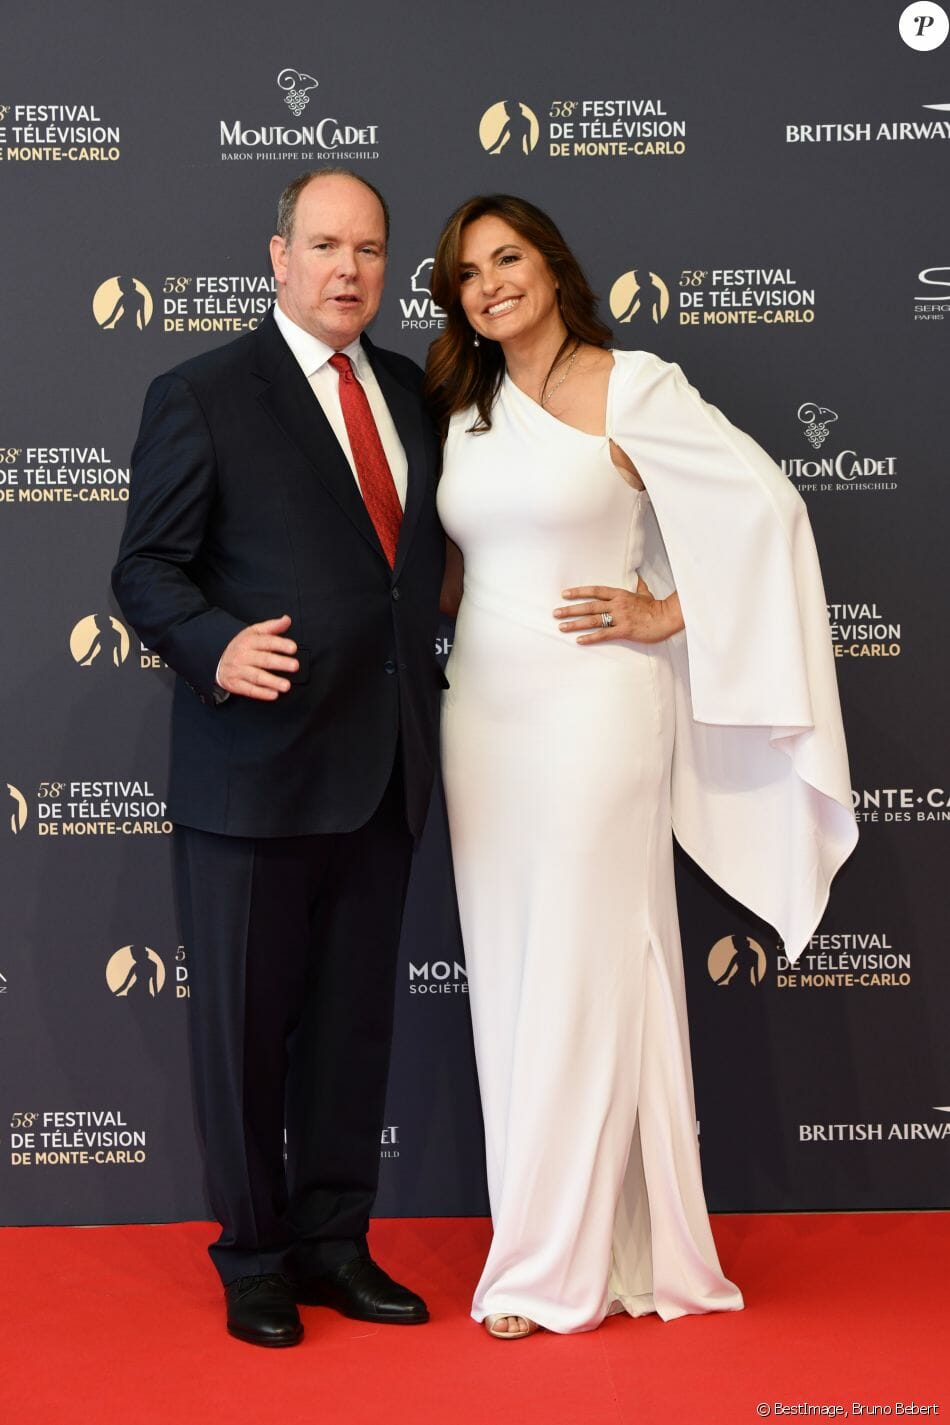 Prince Albert II attended the evening with Law & Order- SVU star Mariska Hargitay